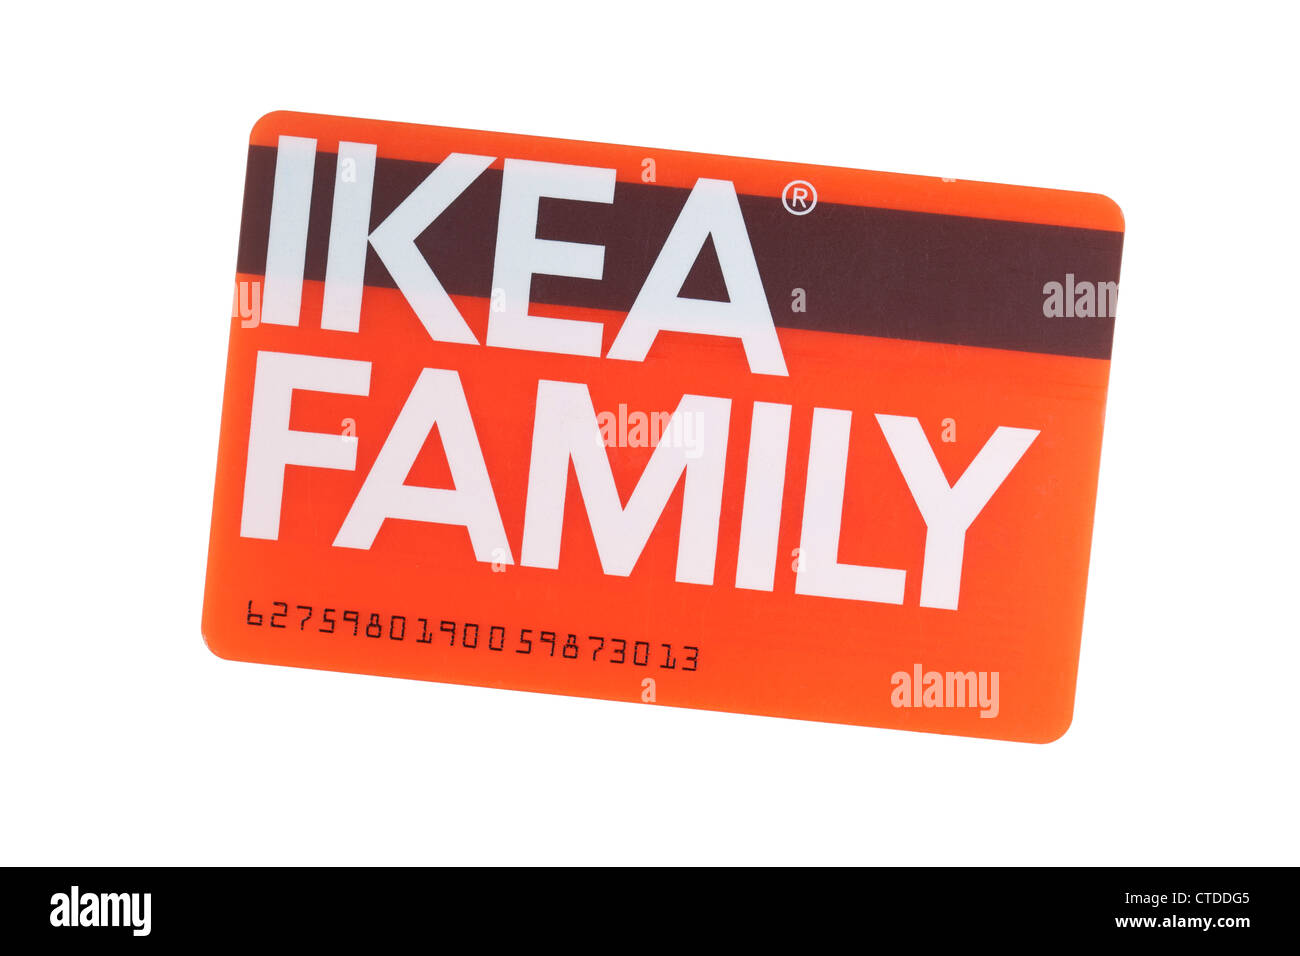 ikea family loyalty card stock photo 49468501 alamy. Black Bedroom Furniture Sets. Home Design Ideas